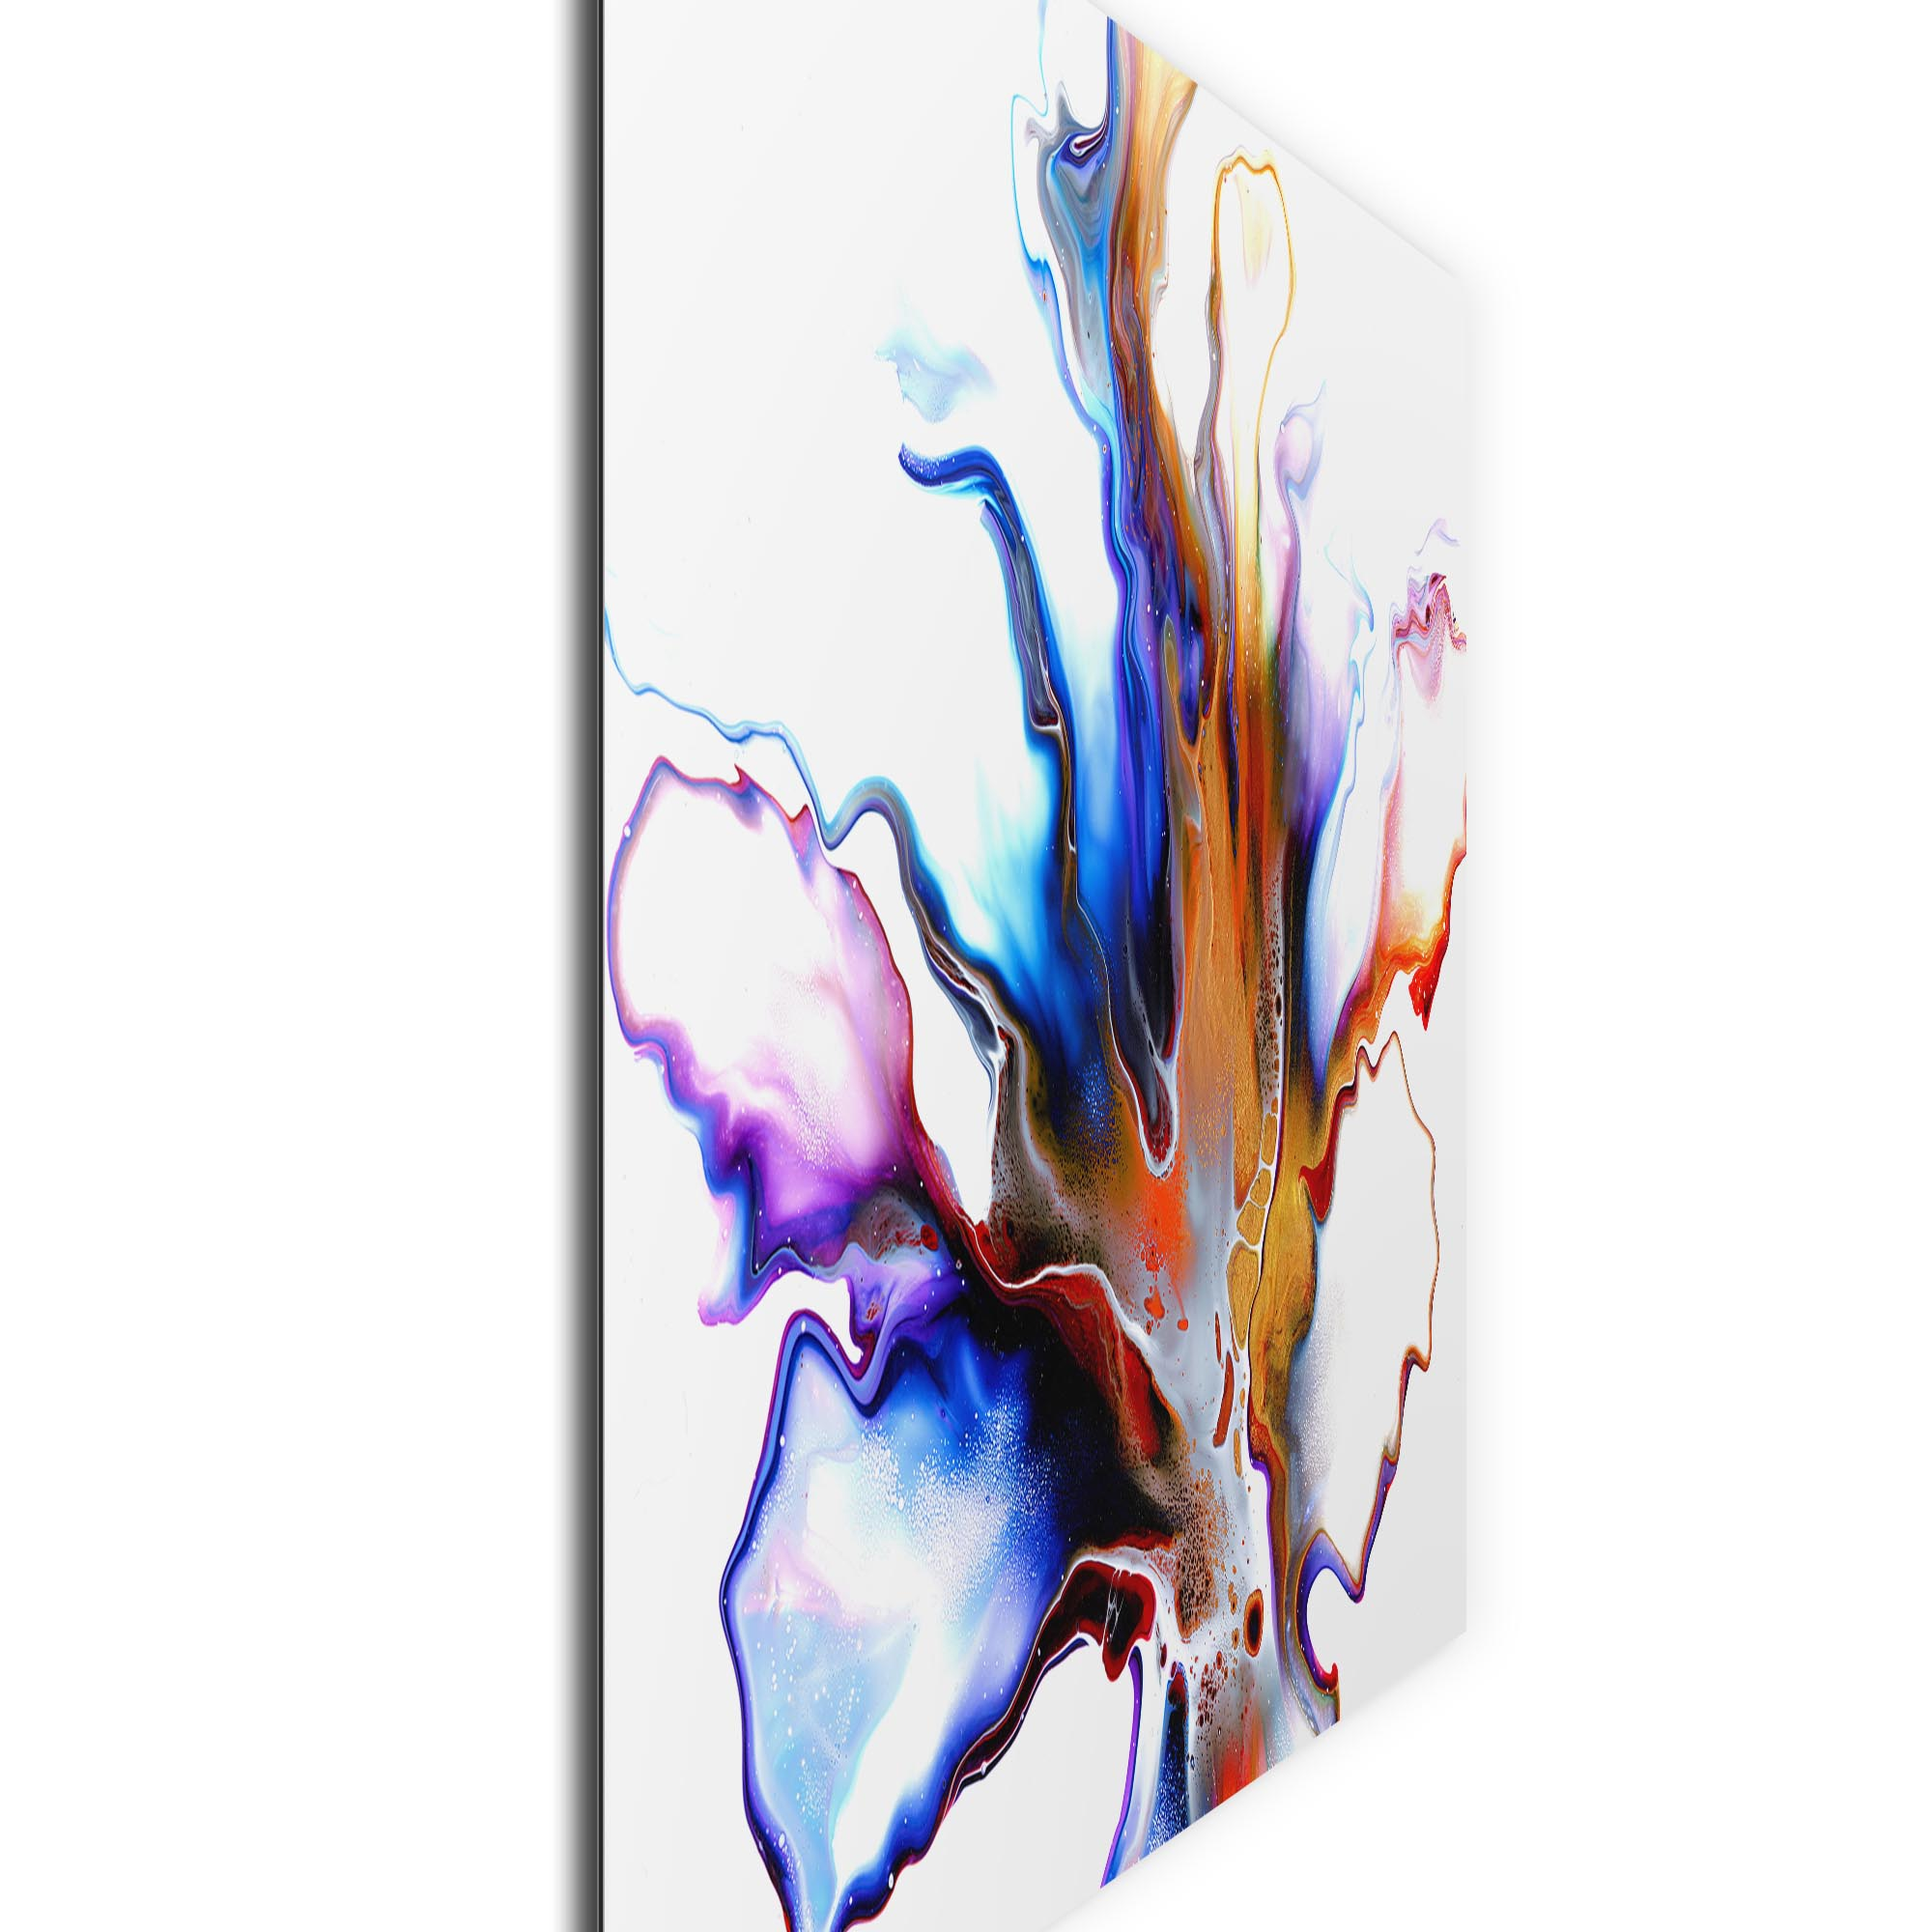 Eruption by Elana Reiter - Abstract Wall Art, Modern Home Decor (32in x 24in) - Image 2